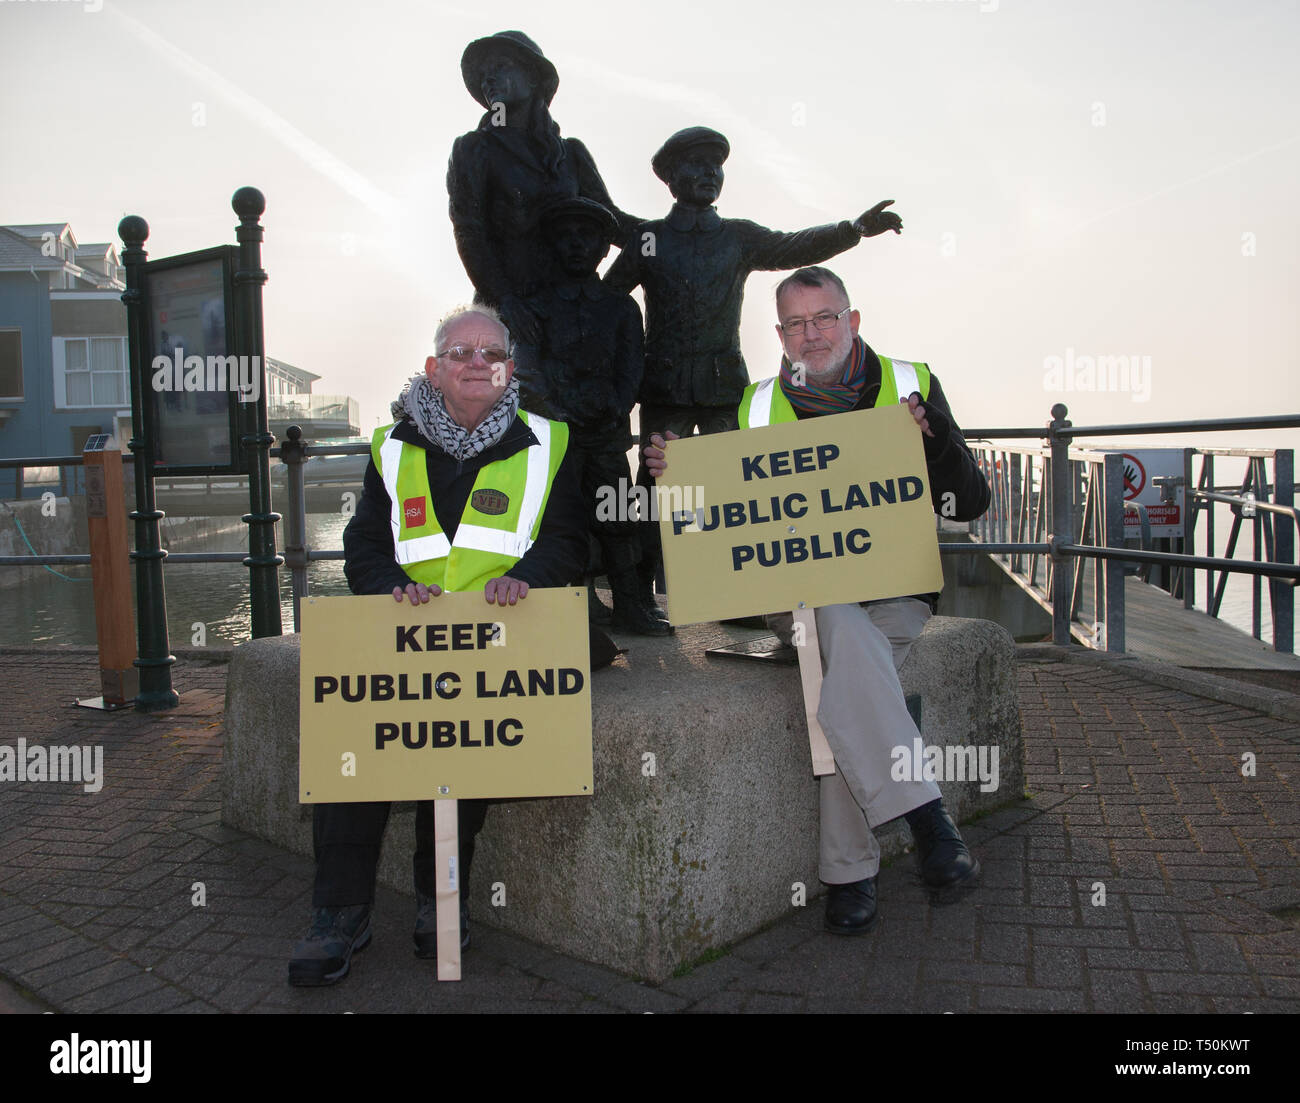 Cobh, Cork, Ireland. 20th April, 2019. On the arrival of the liner Saga Sapphire,  Cllr Diarmaid Ó Cadhla and Tony Cronin protest at the decision by the Port of Cork company to close the quayside public walk during the arrival of cruise liners in Cobh, Co. Cork, Ireland. Credit: David Creedon/Alamy Live News Stock Photo